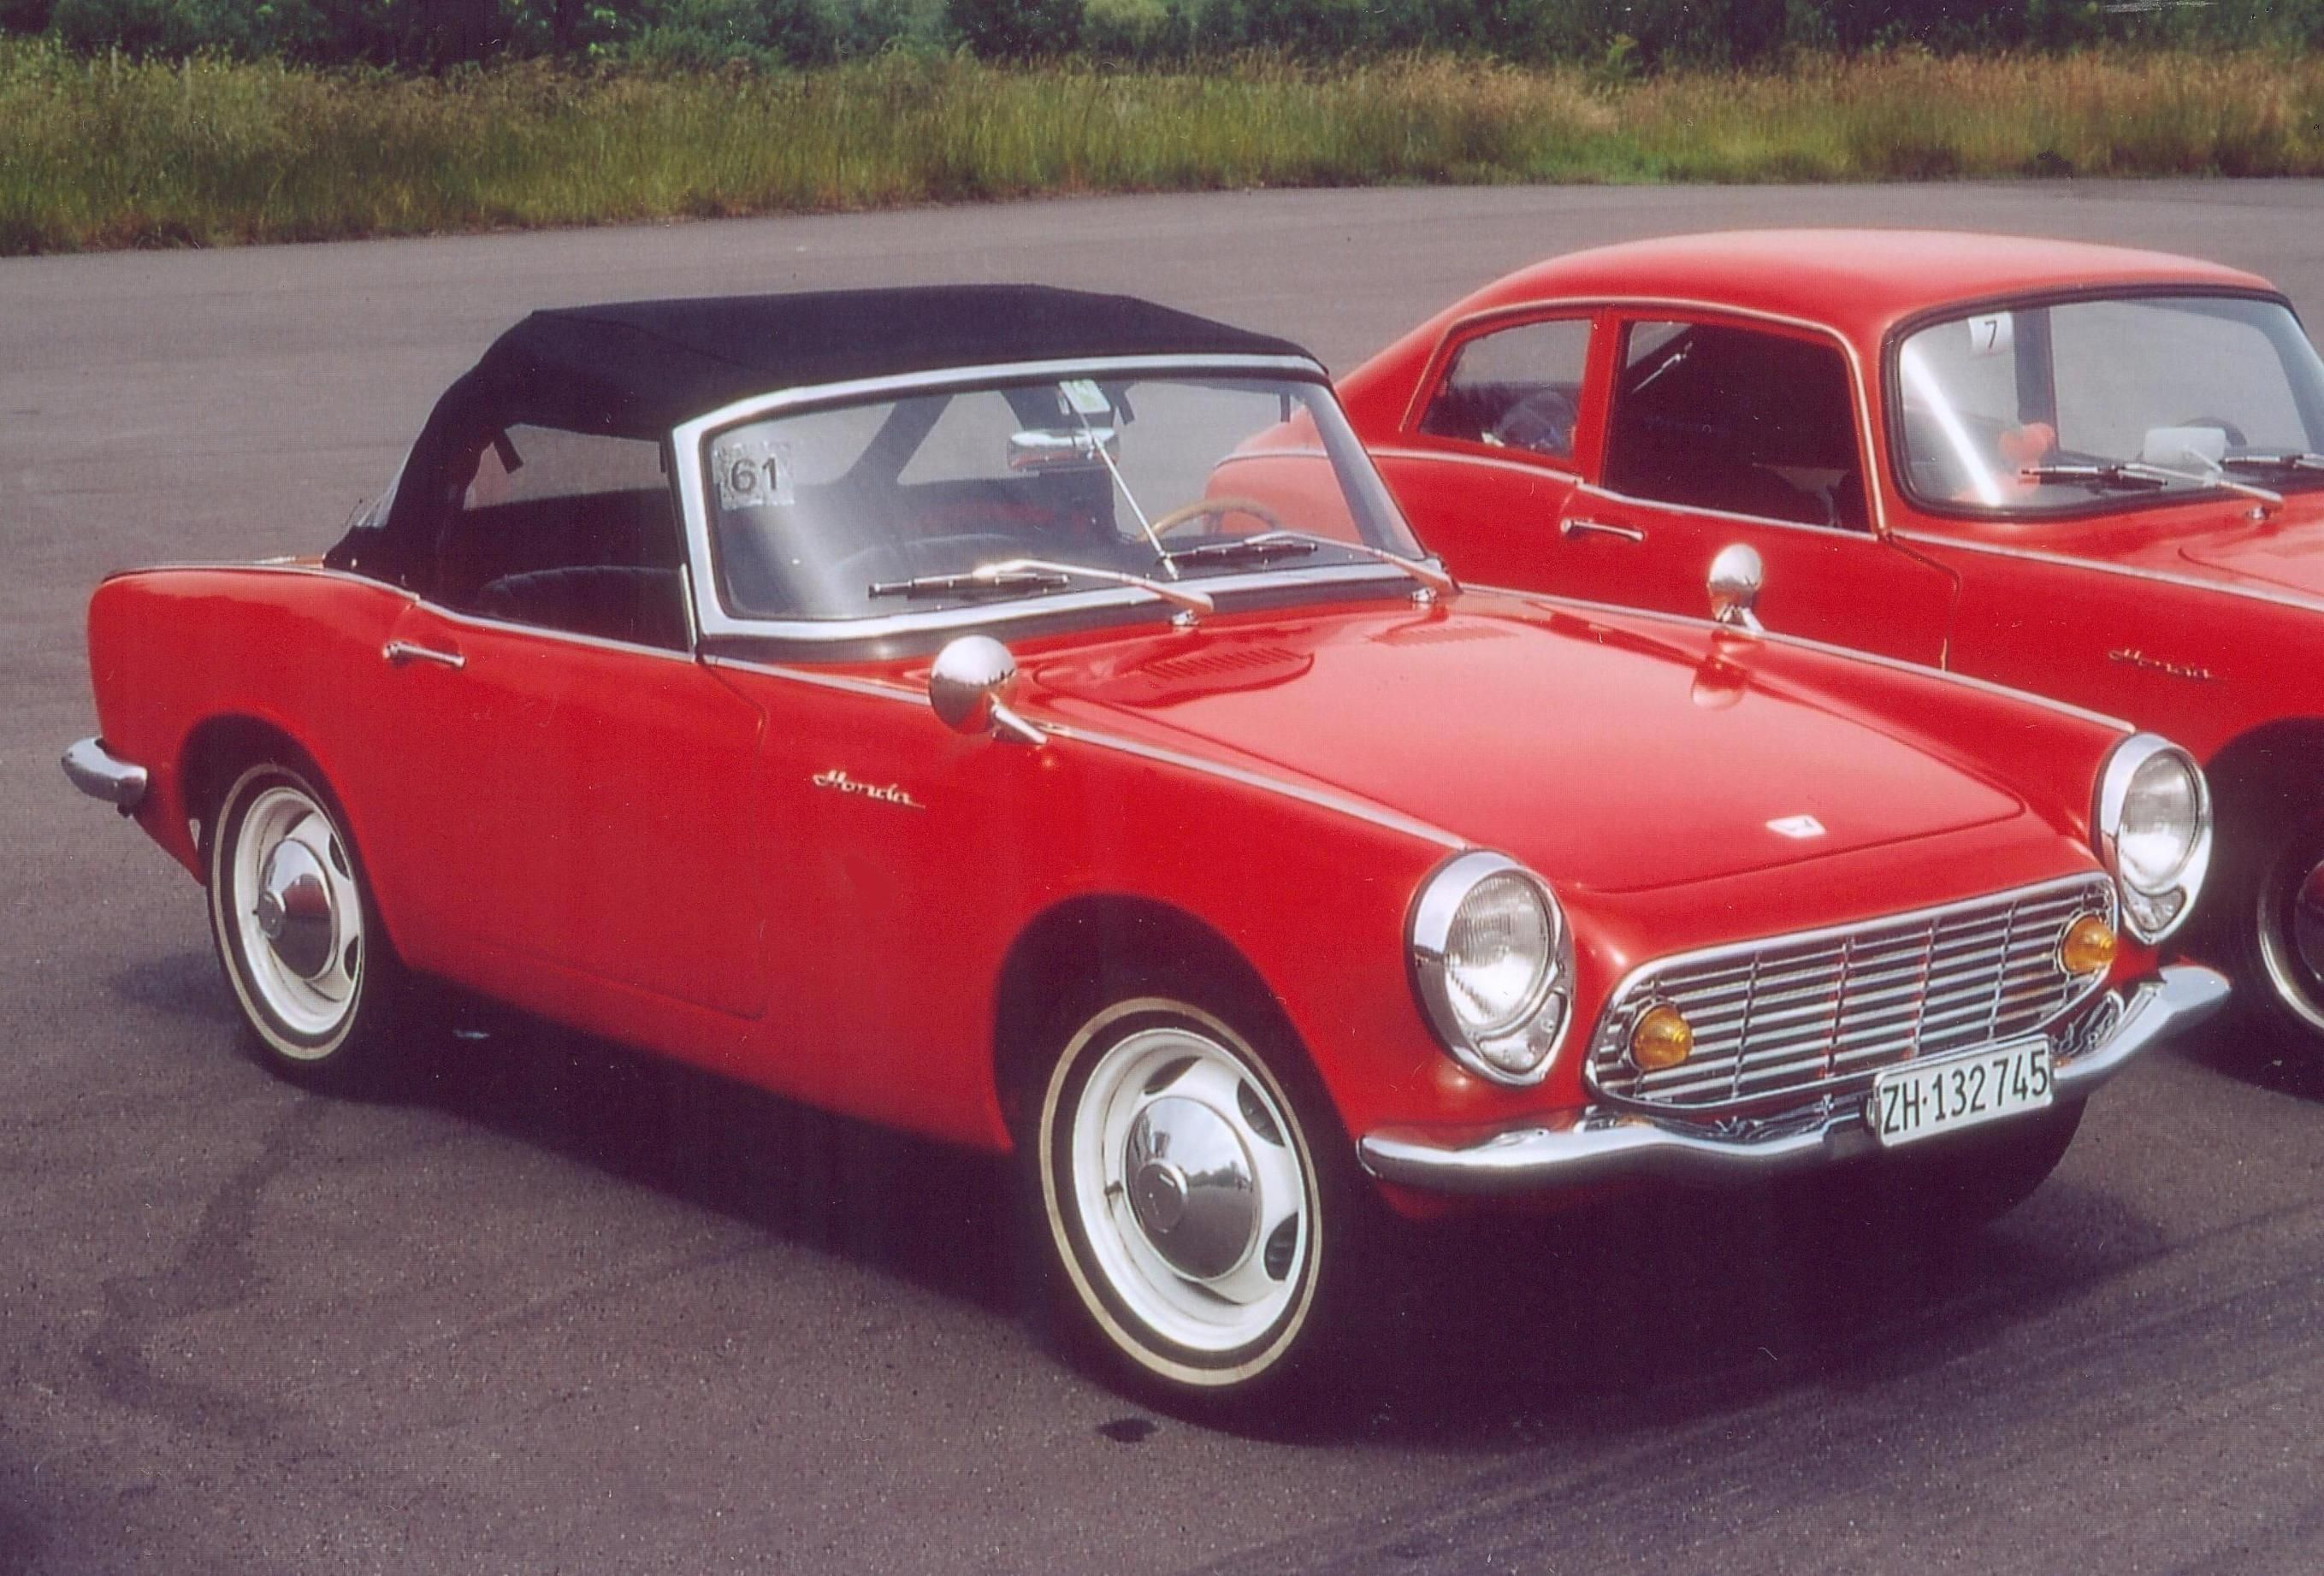 Honda S600 Cabrio A lot of people don't know that the